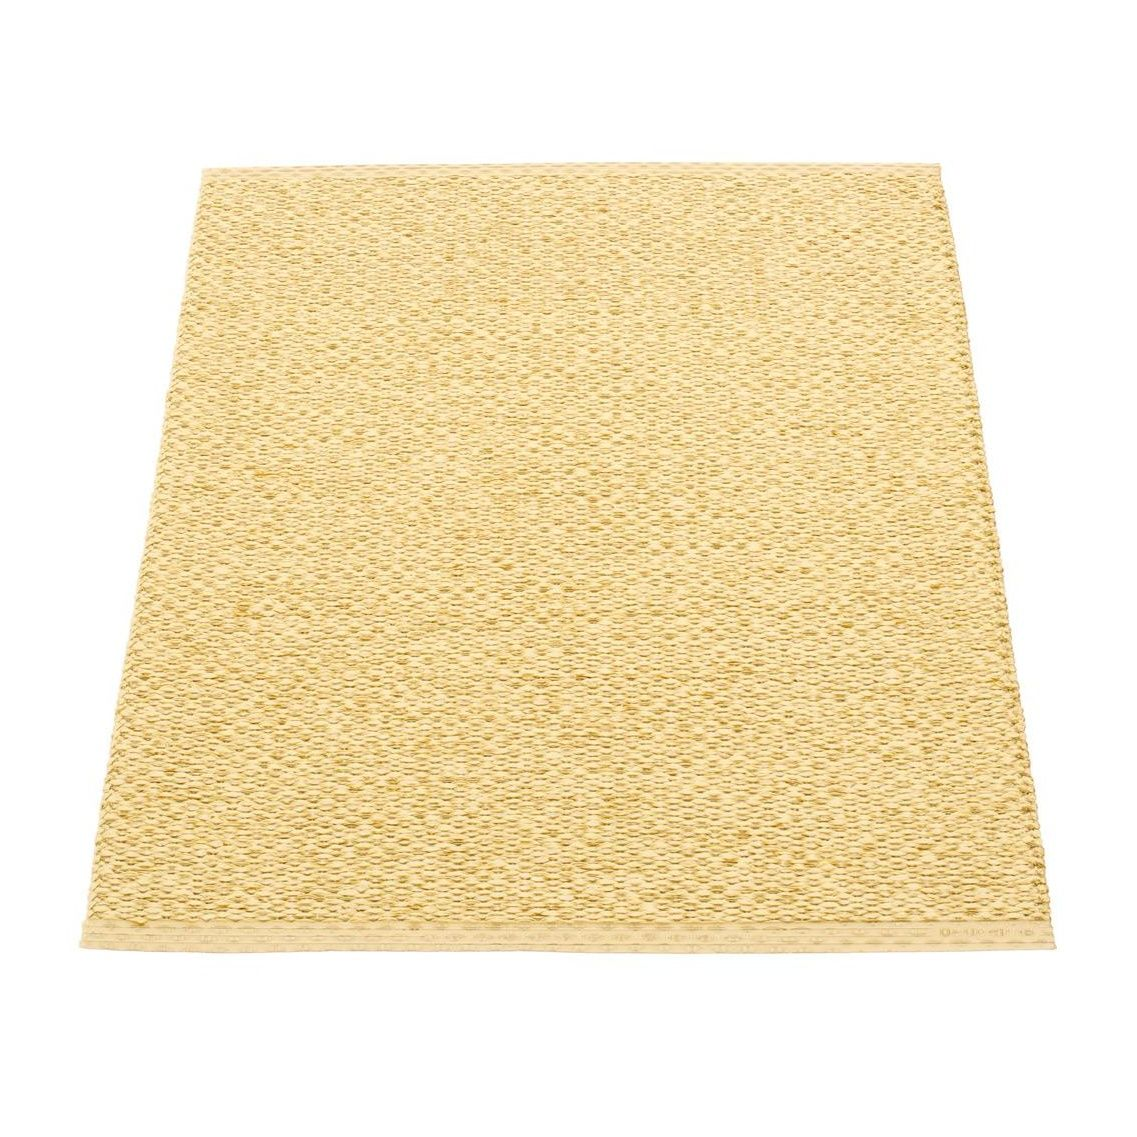 Discount Seagrass Rugs Natural Seagrass Bound Brown 39